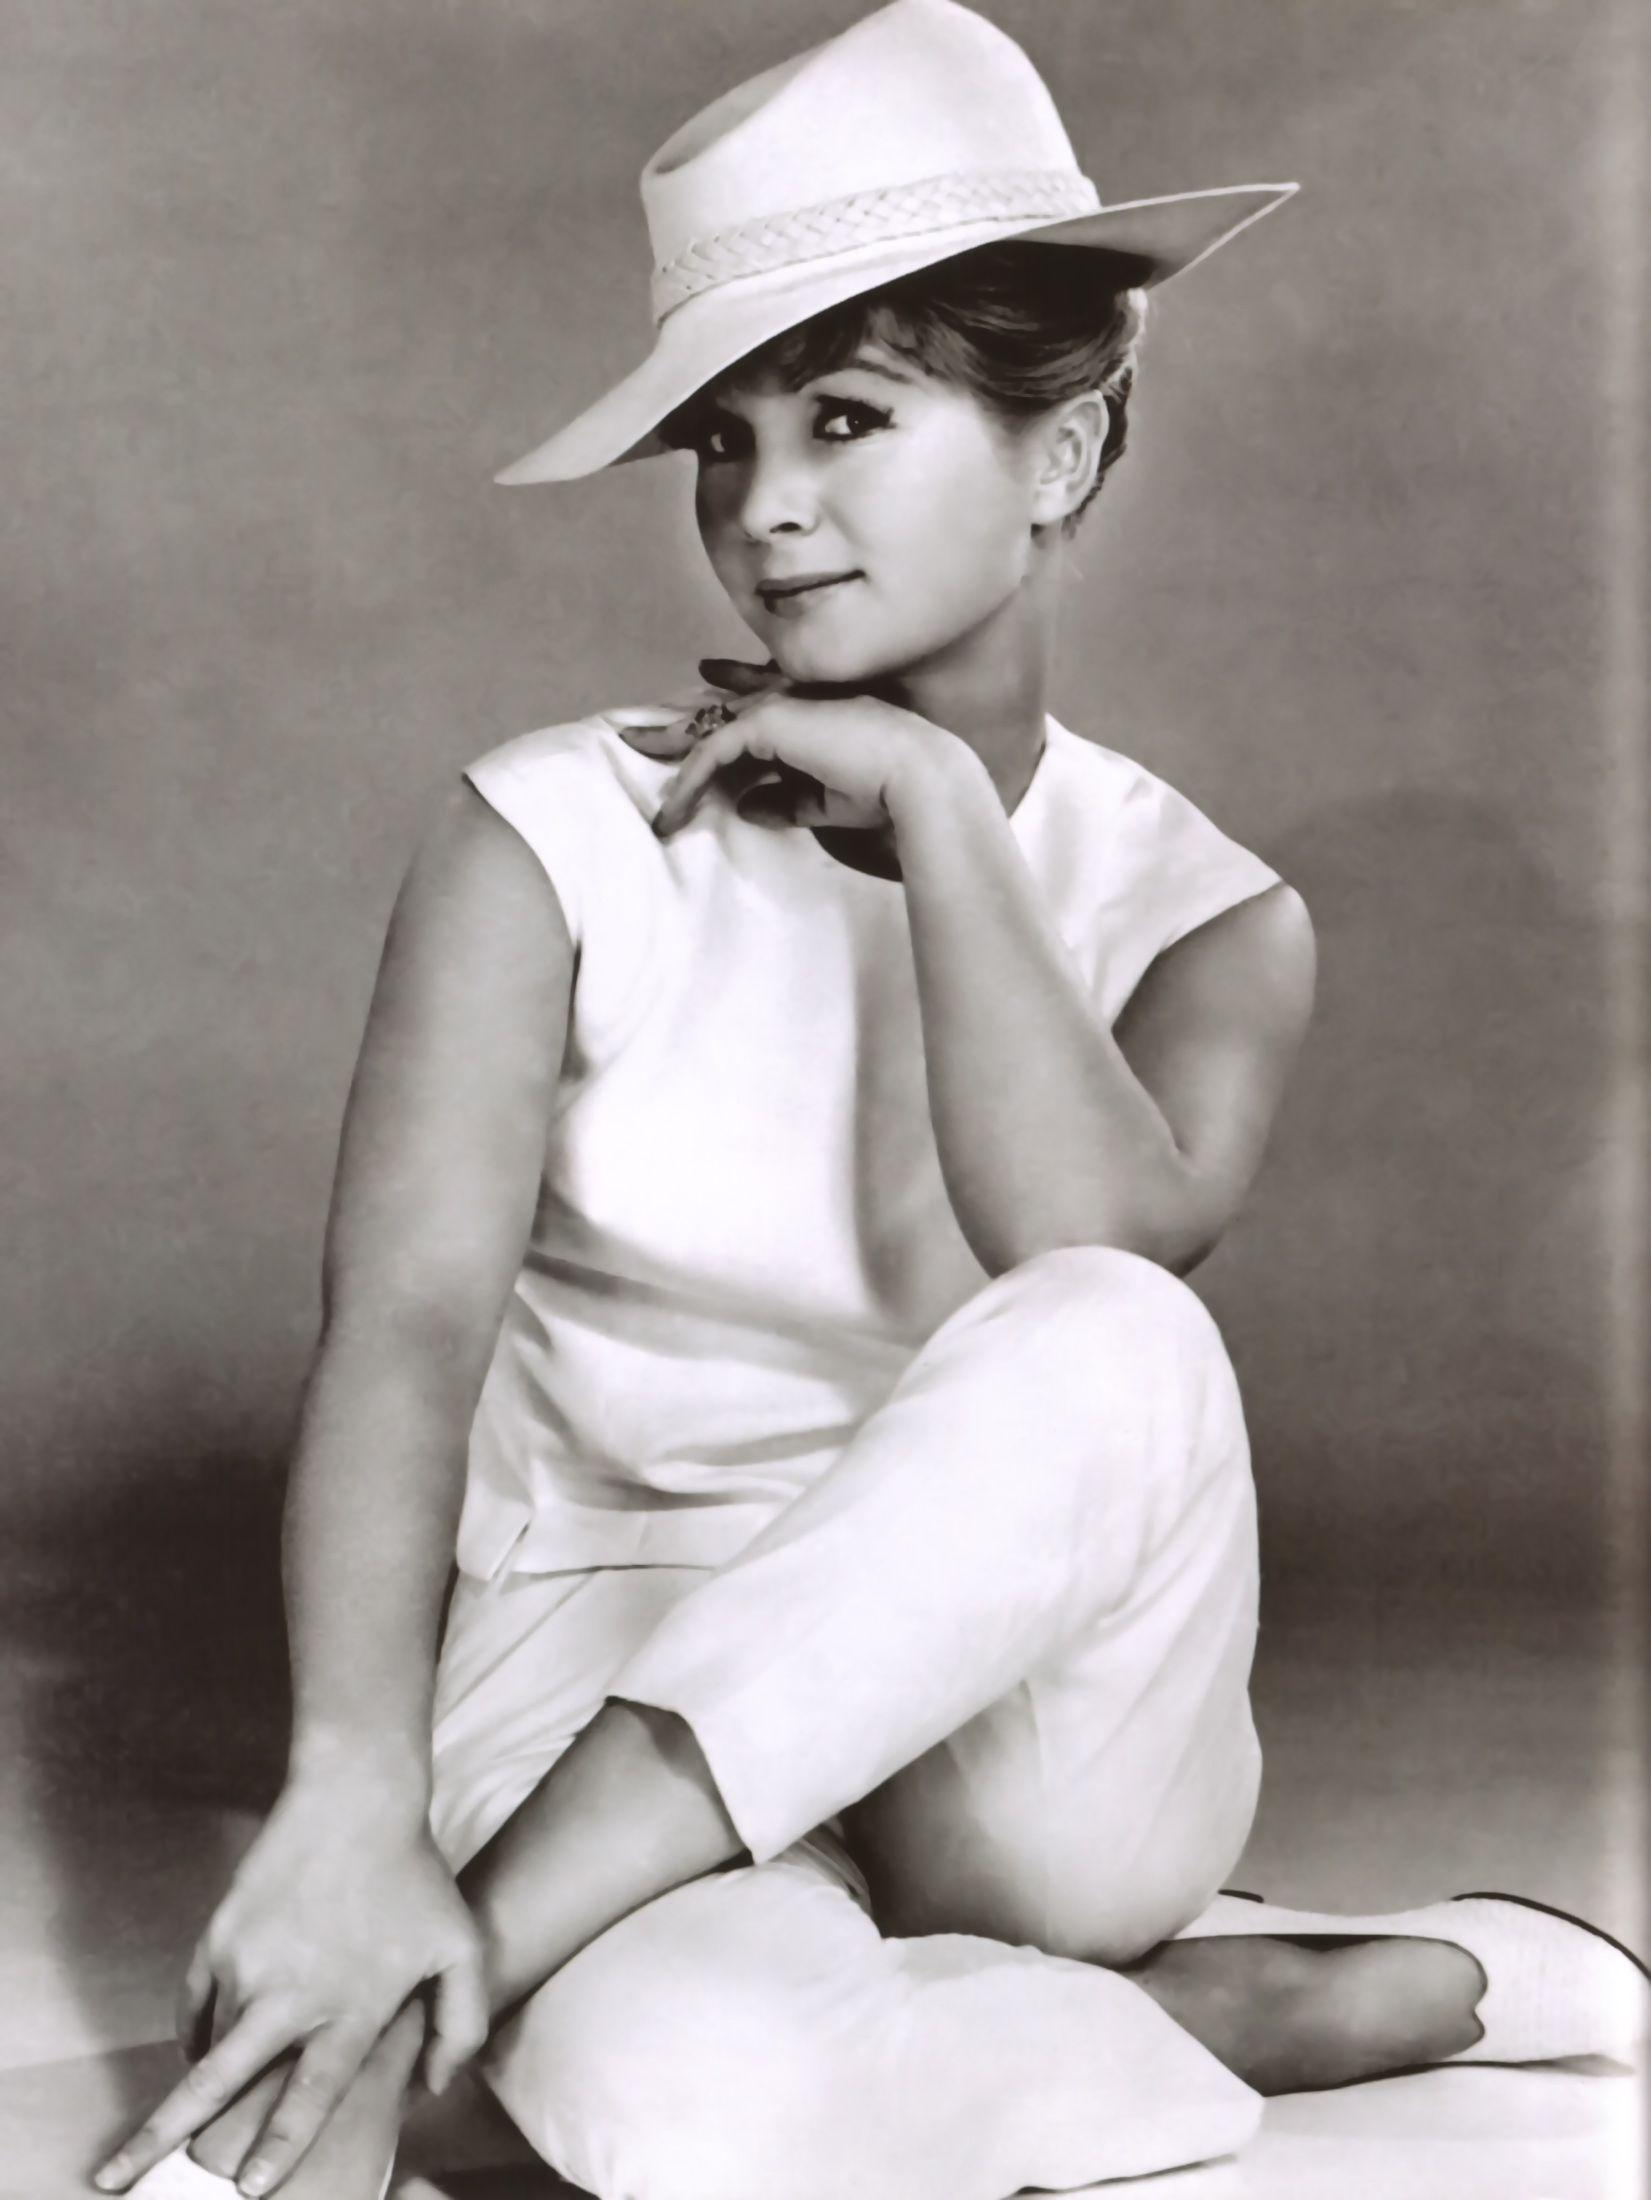 1000+ images about DEBRA/DEBBIE on Pinterest | Debbie allen ...